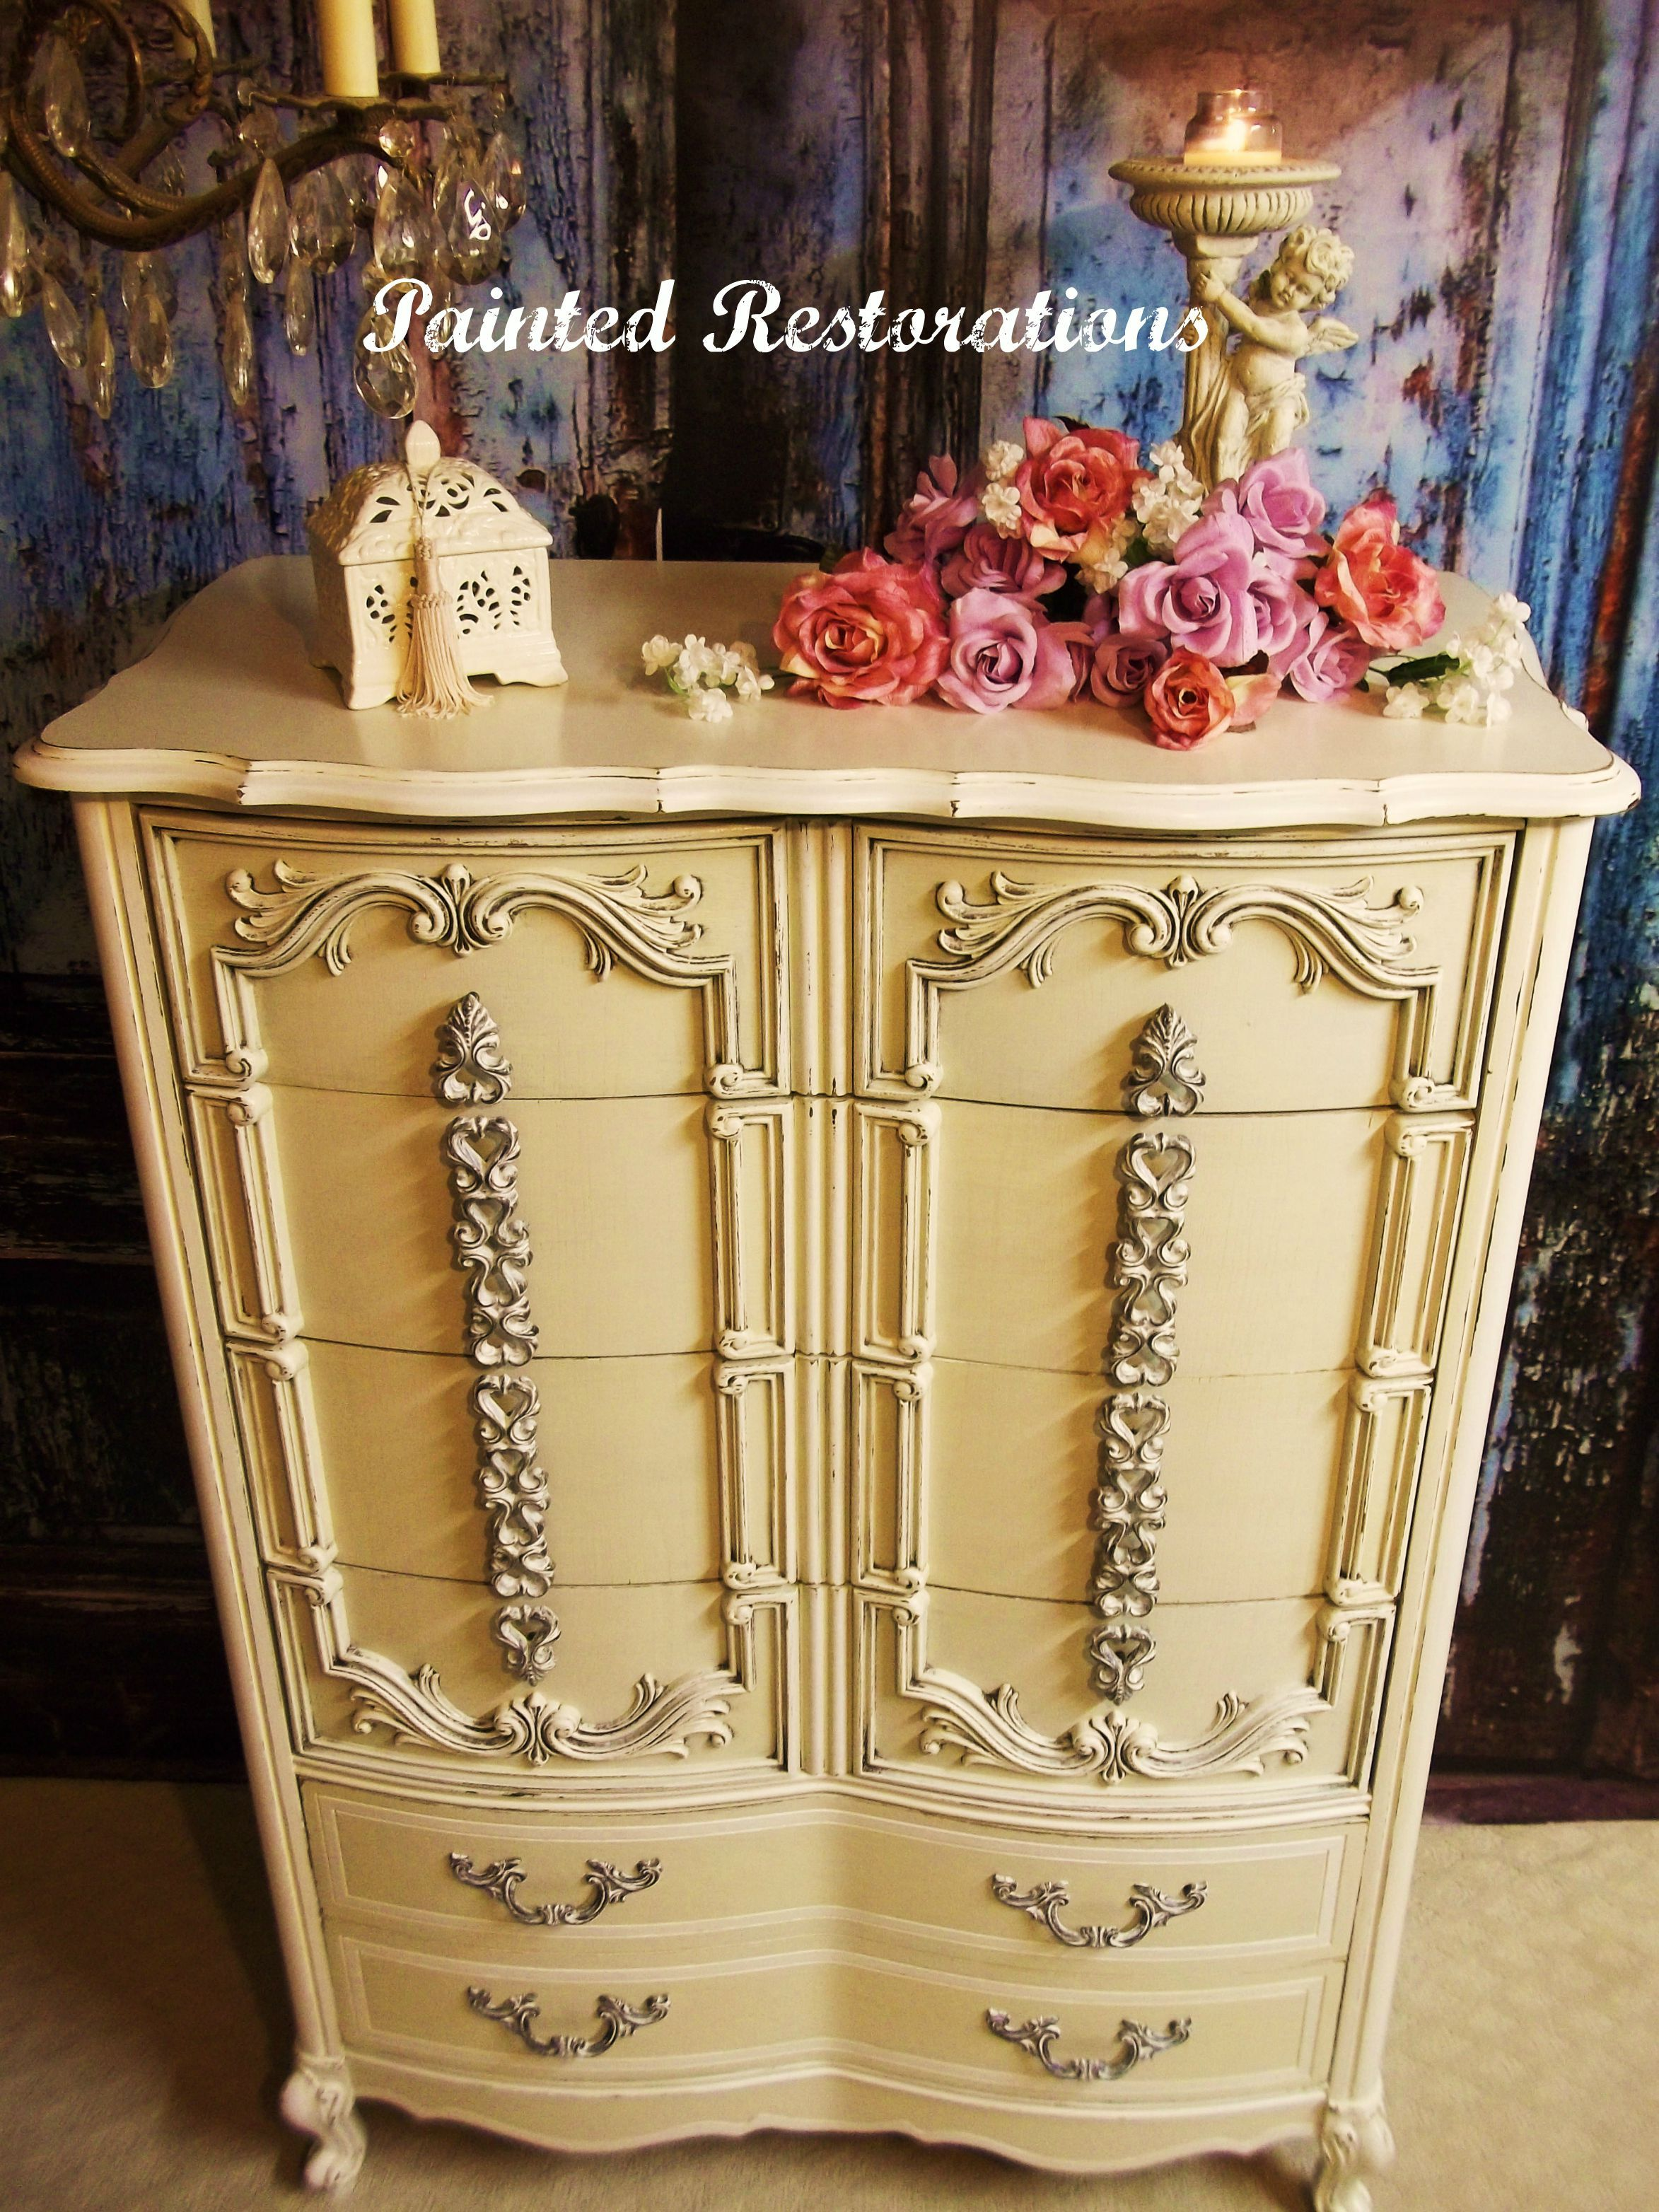 Pin by painted restorations on painted restorations pinterest